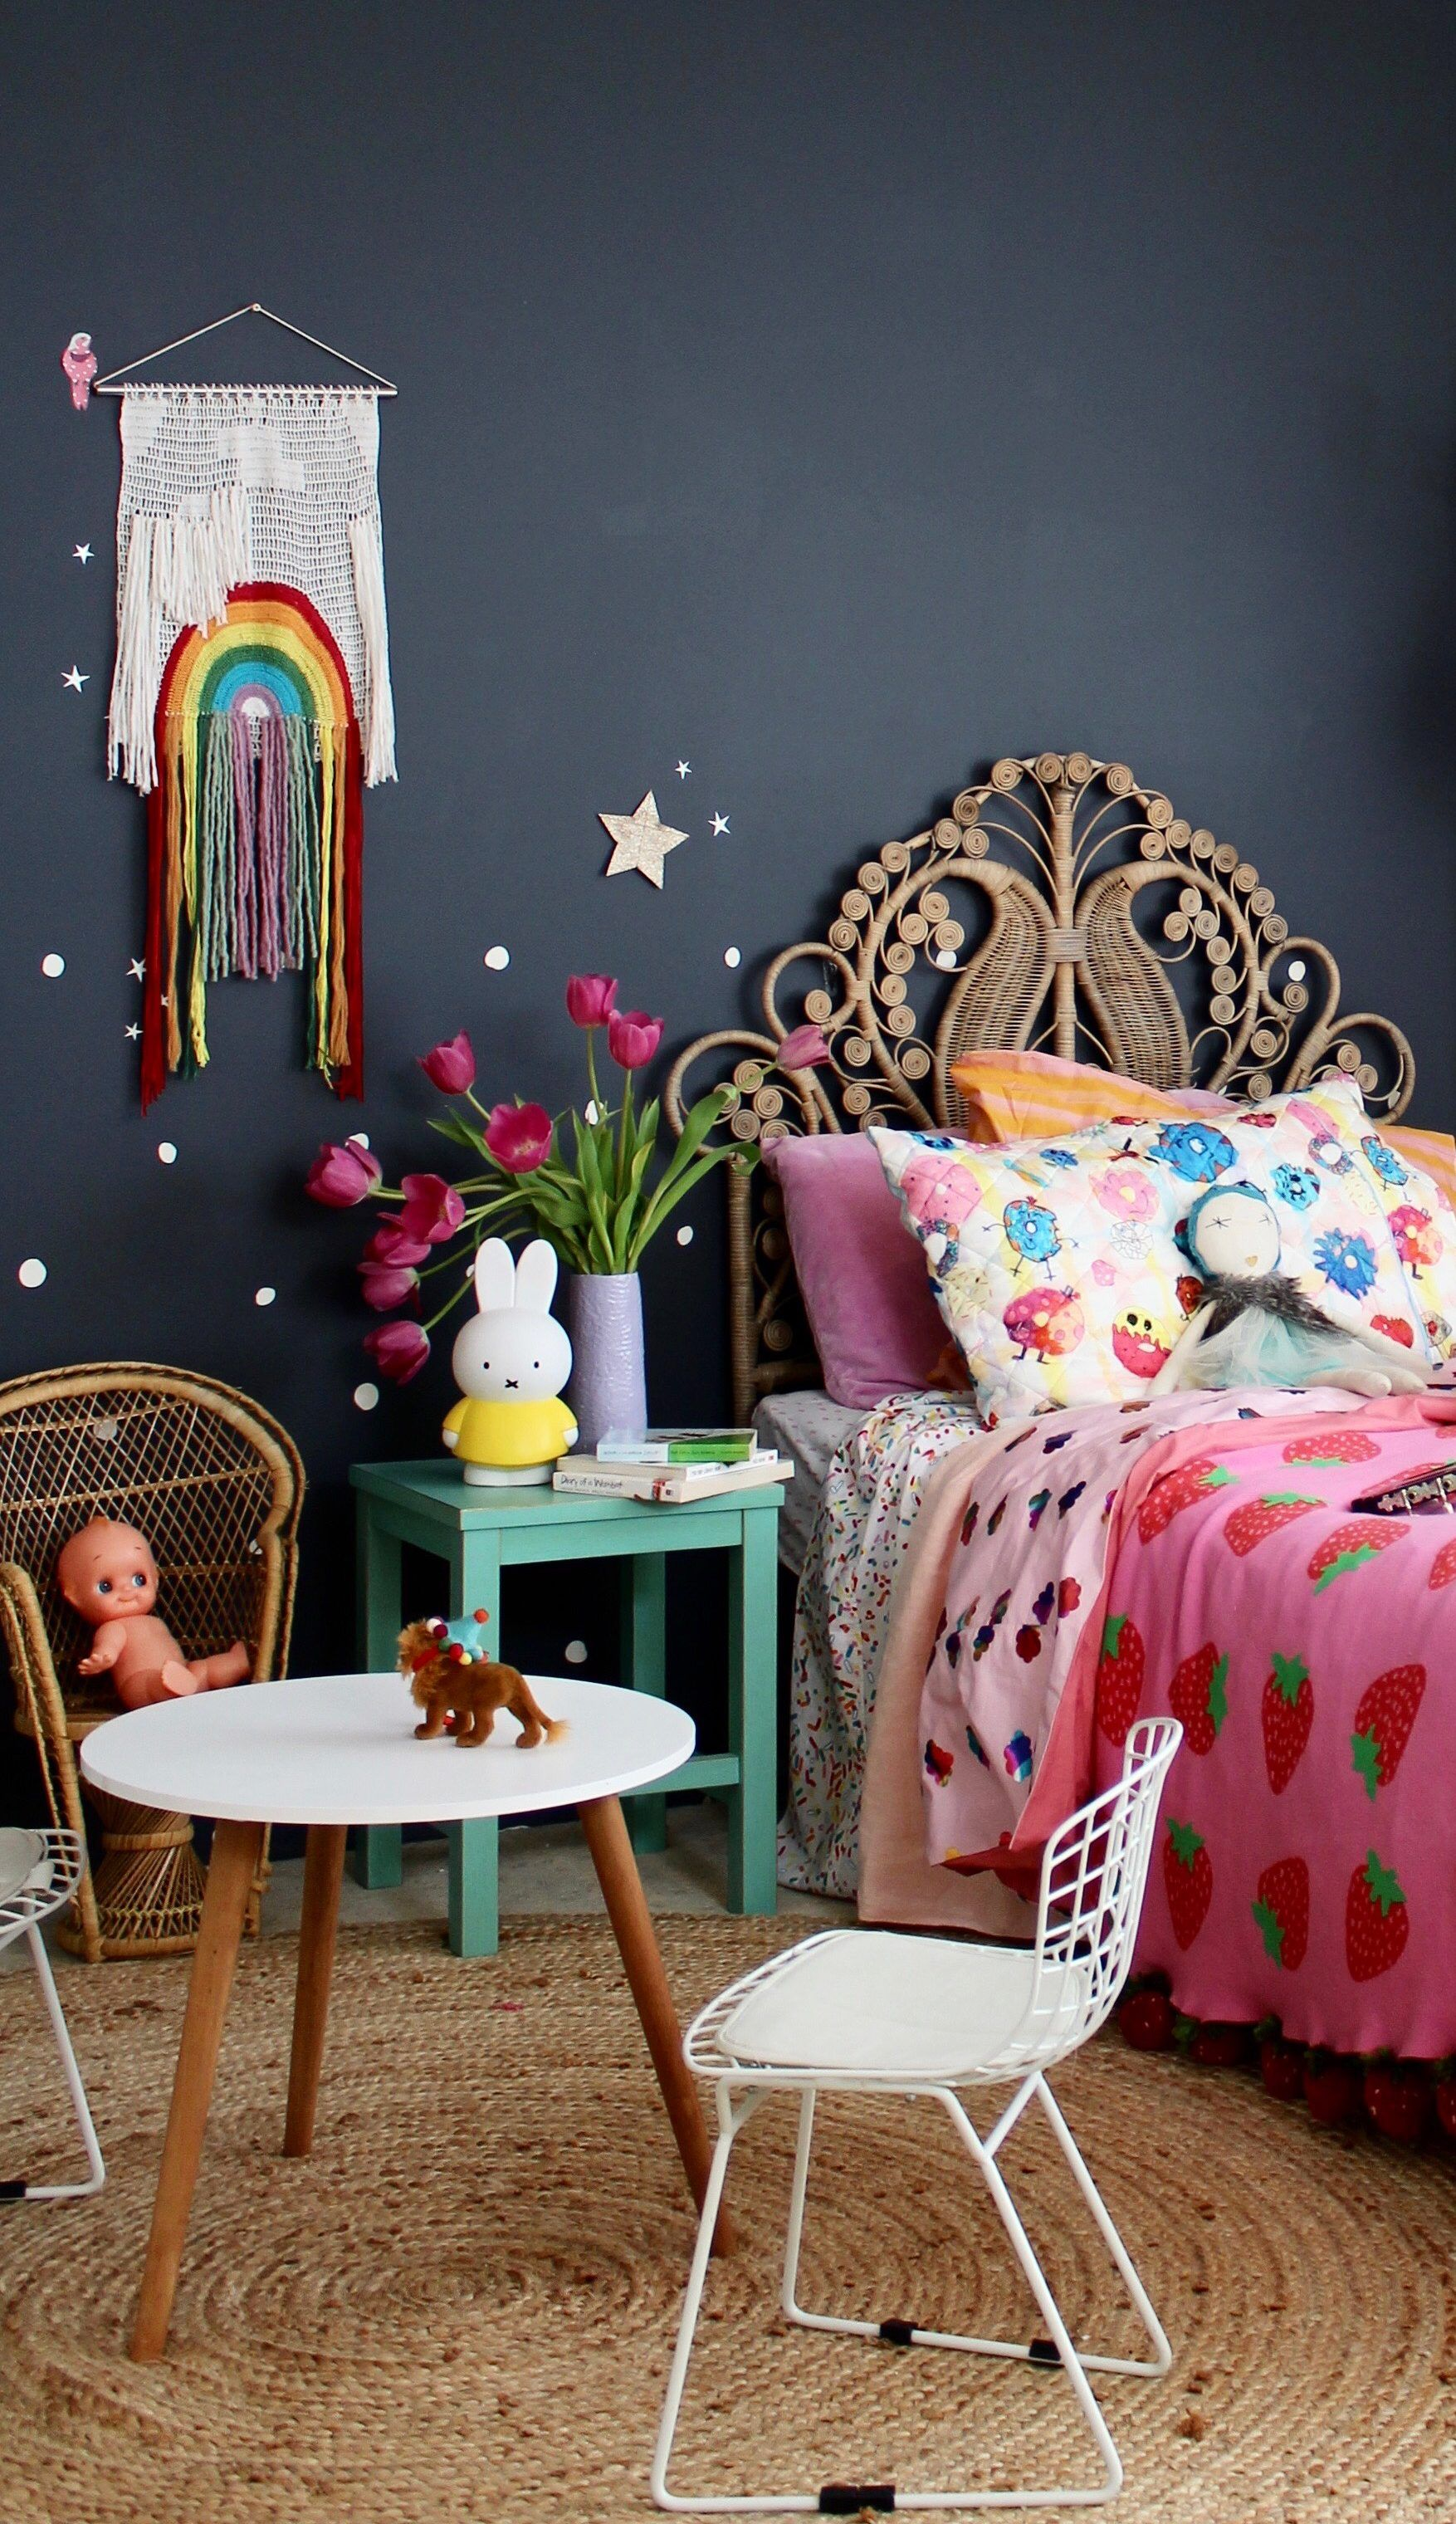 Trending now boho vintage boho bedrooms and blog - Decorating kids room ...